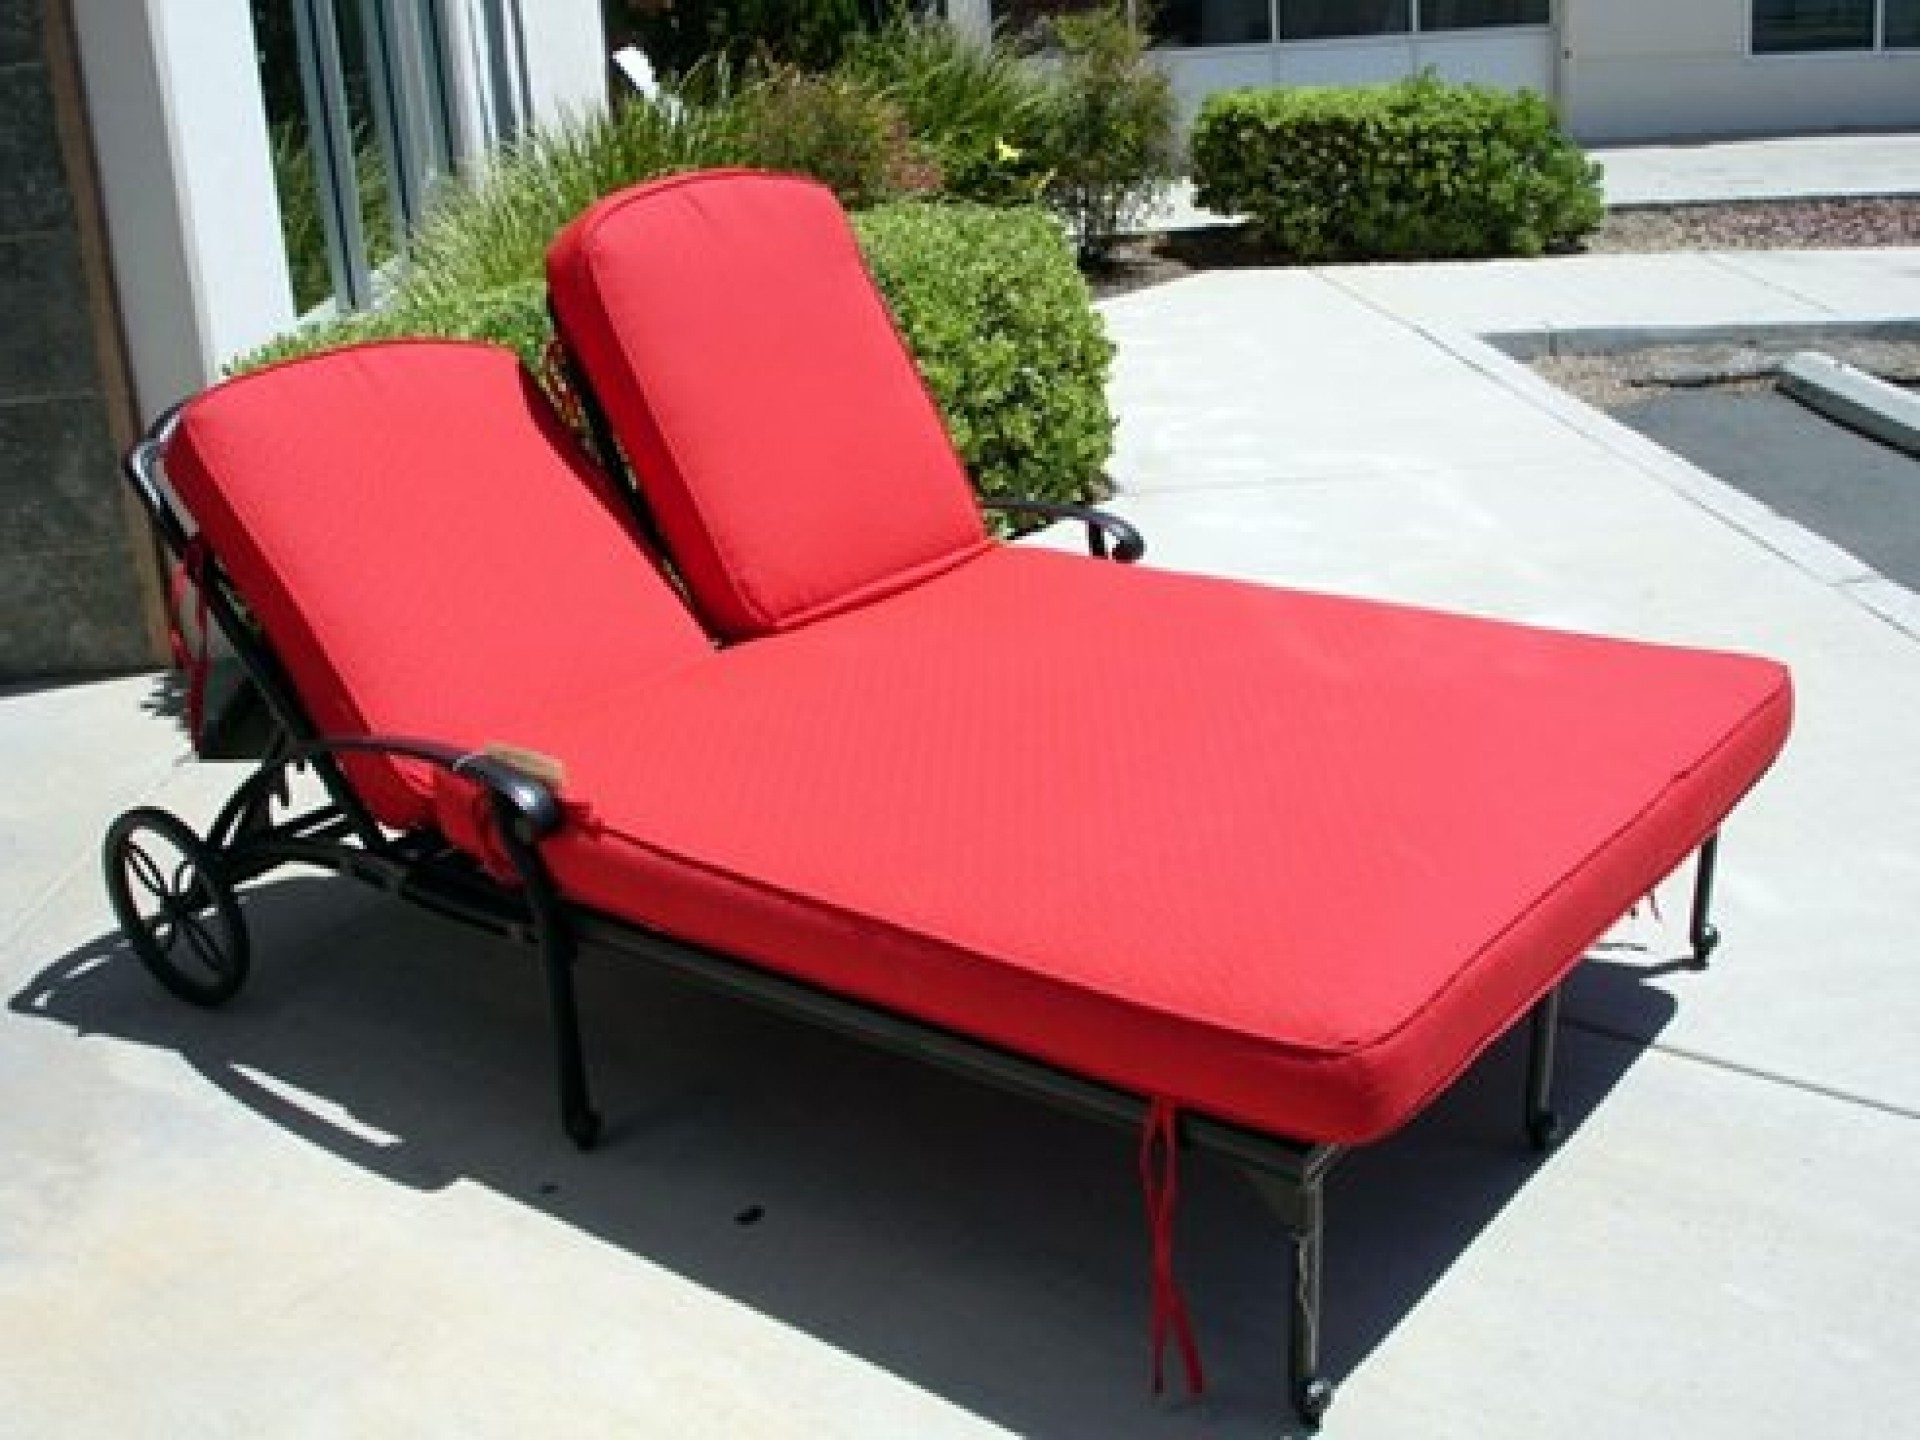 Cushion For Chaise Lounge Chair • Lounge Chairs Ideas Inside Recent Double Chaise Lounge Outdoor Chairs (View 2 of 15)